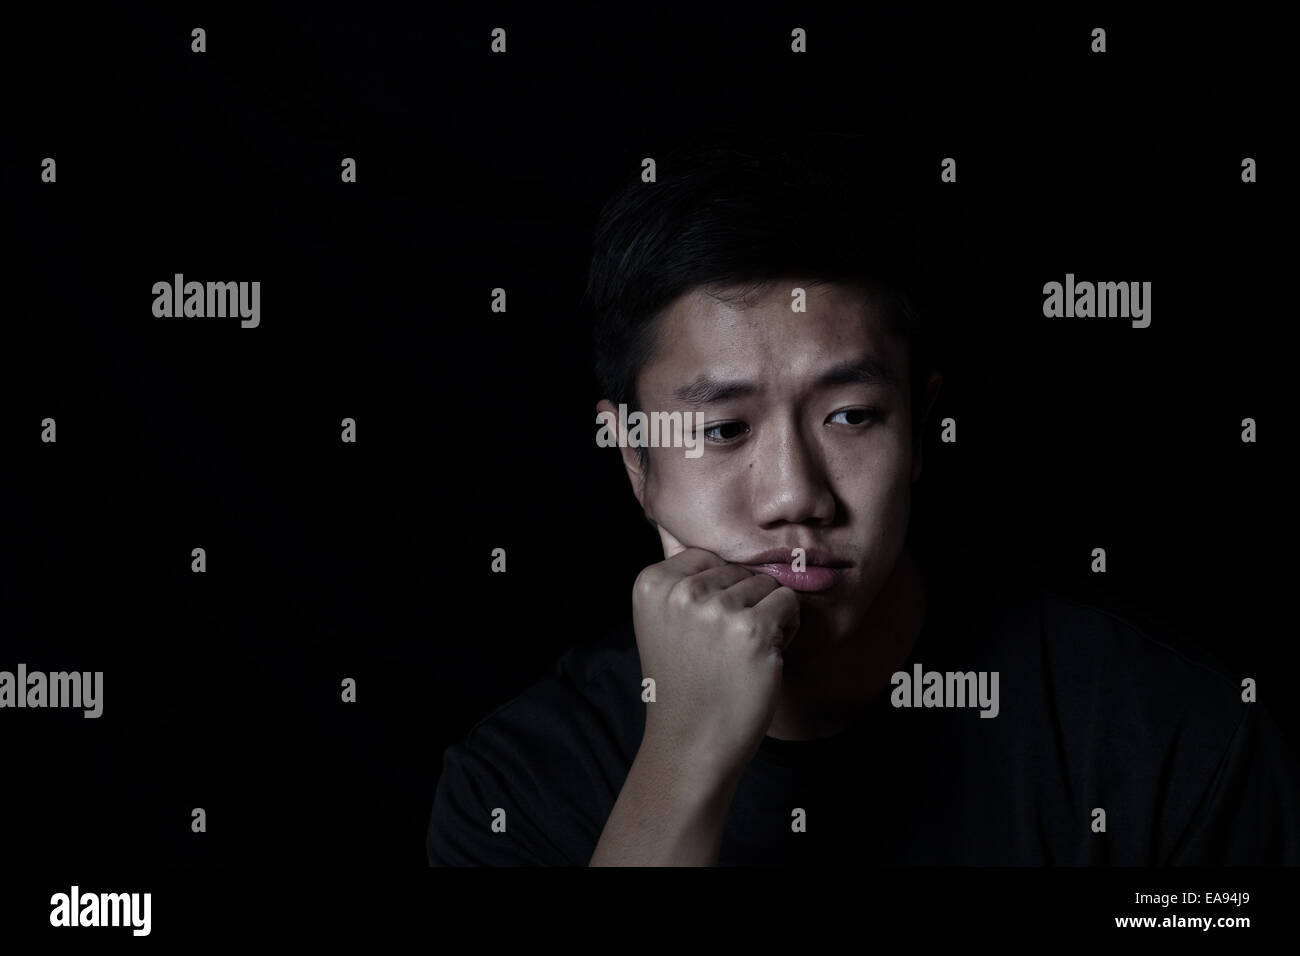 Young man depressed on black background - Stock Image